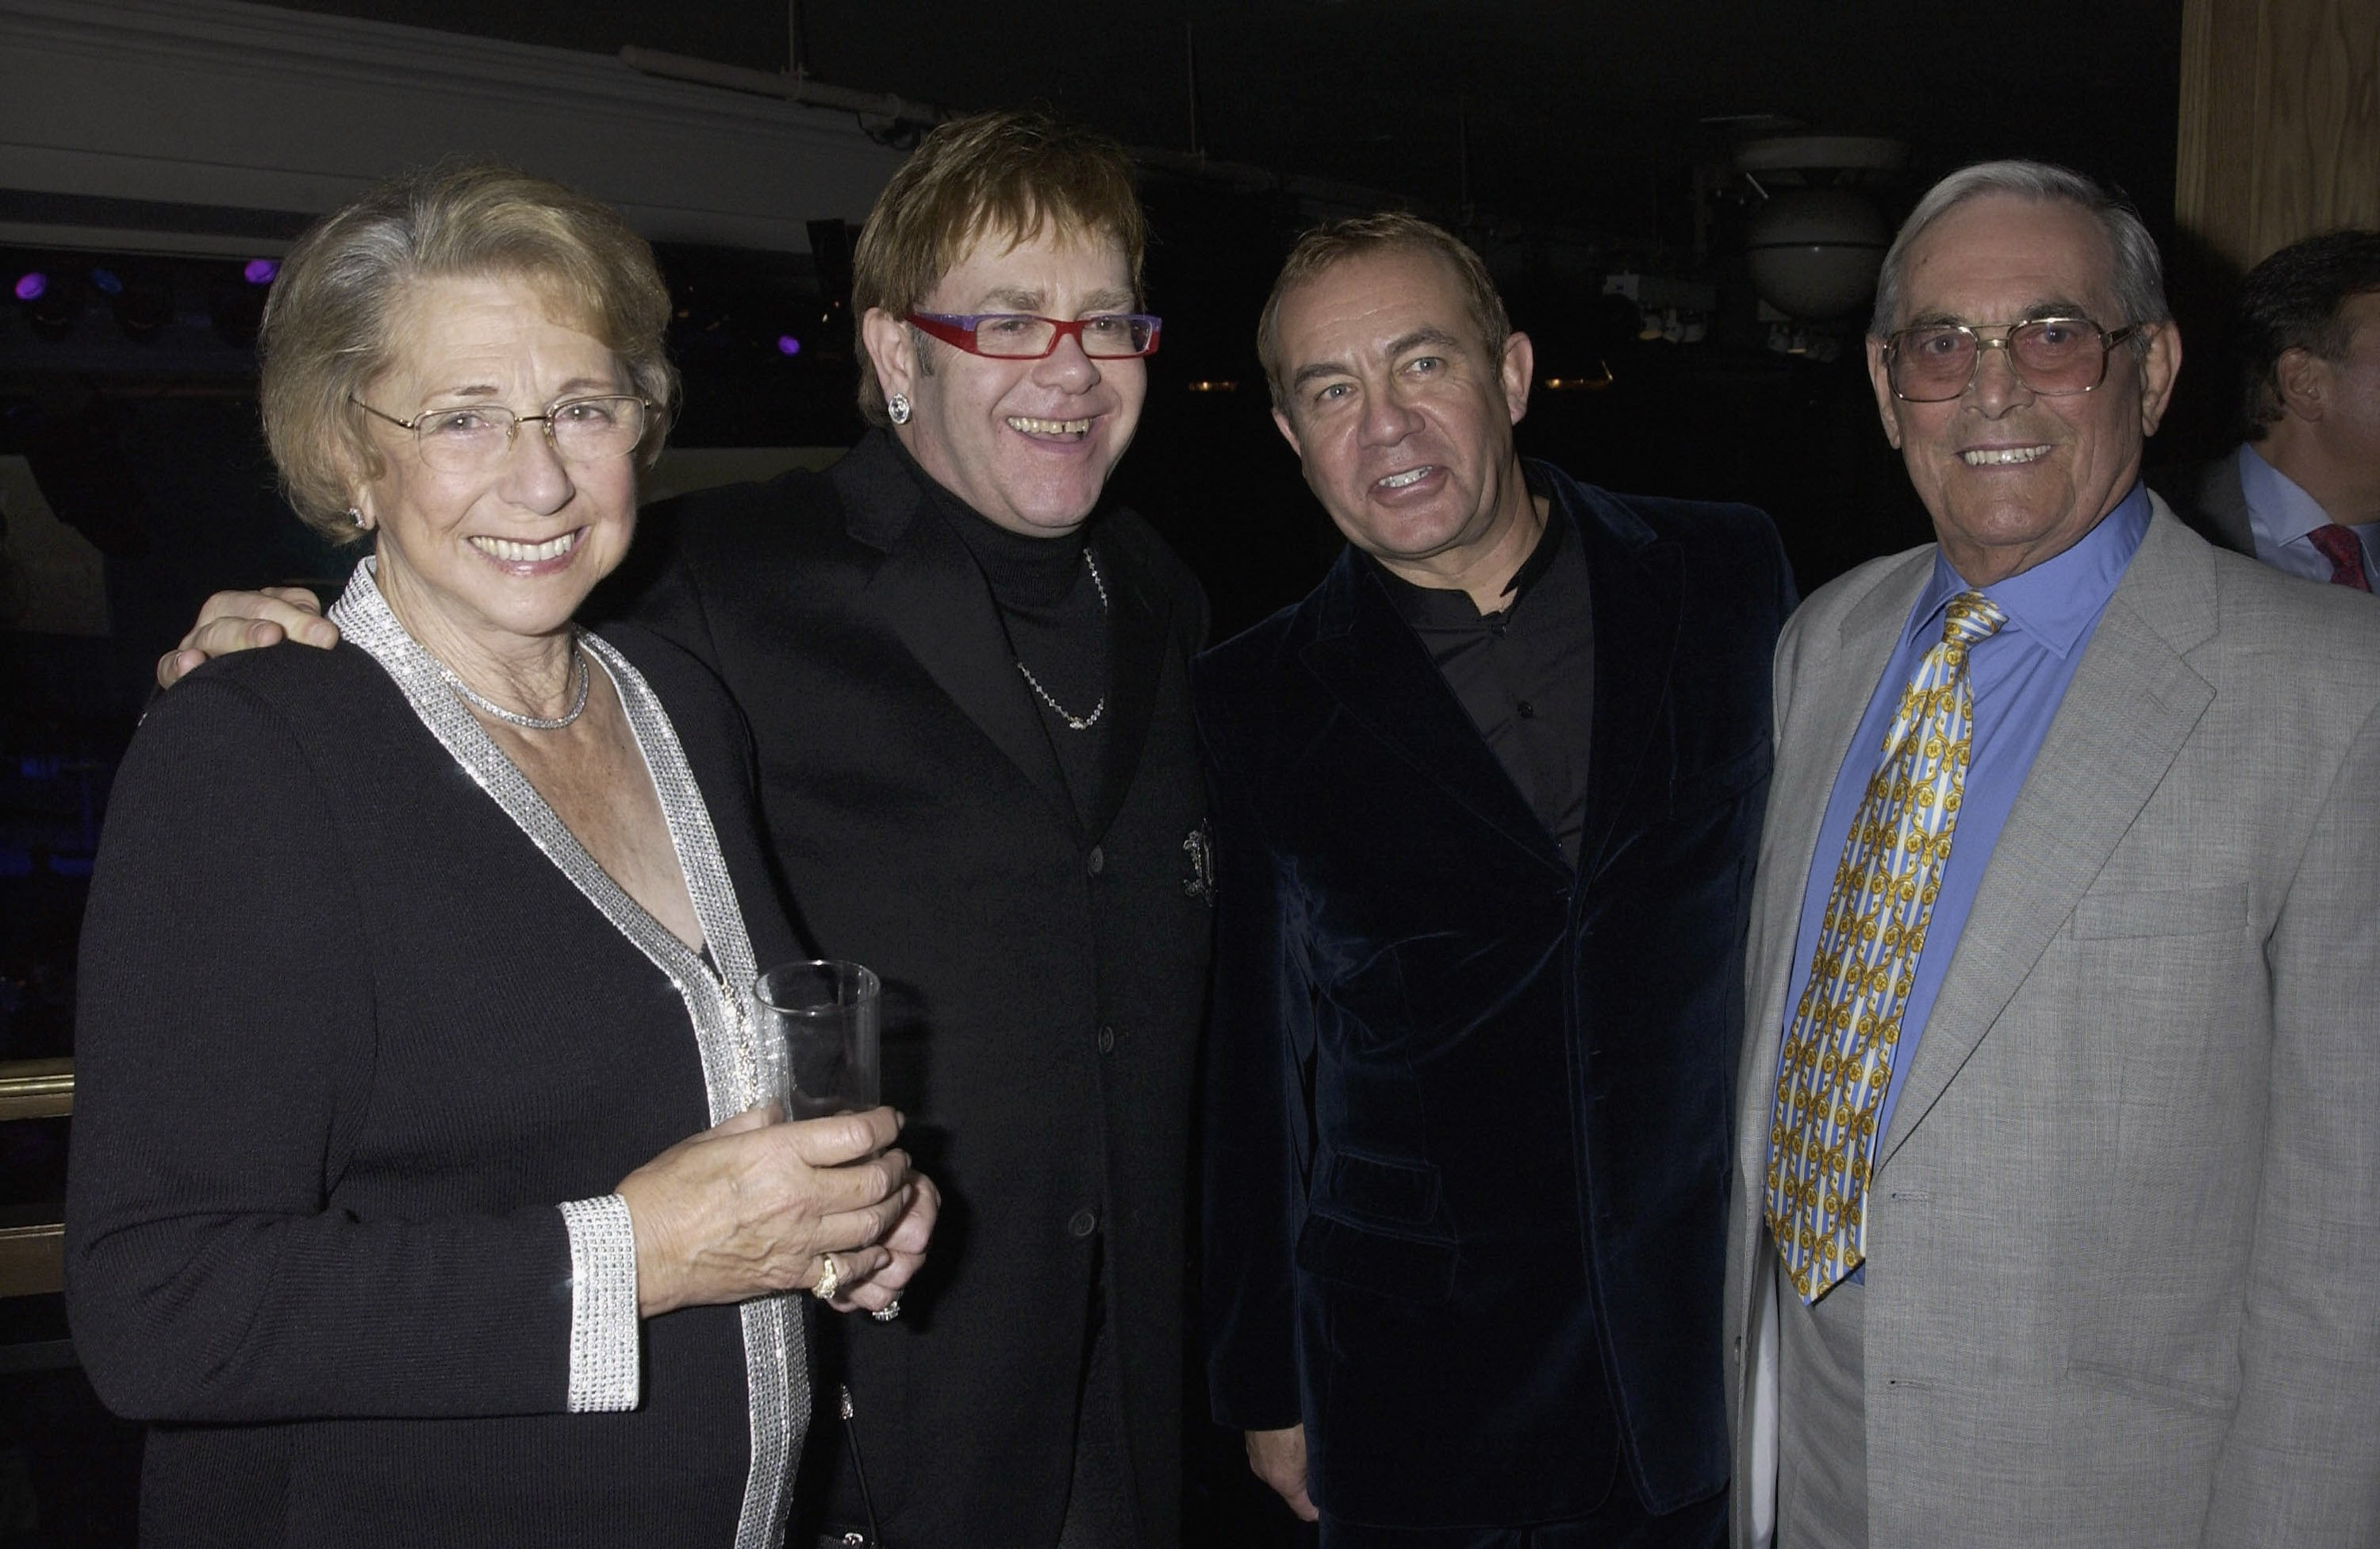 Image Credits: Getty Images / Elton John is pictured amongst some of his guests.